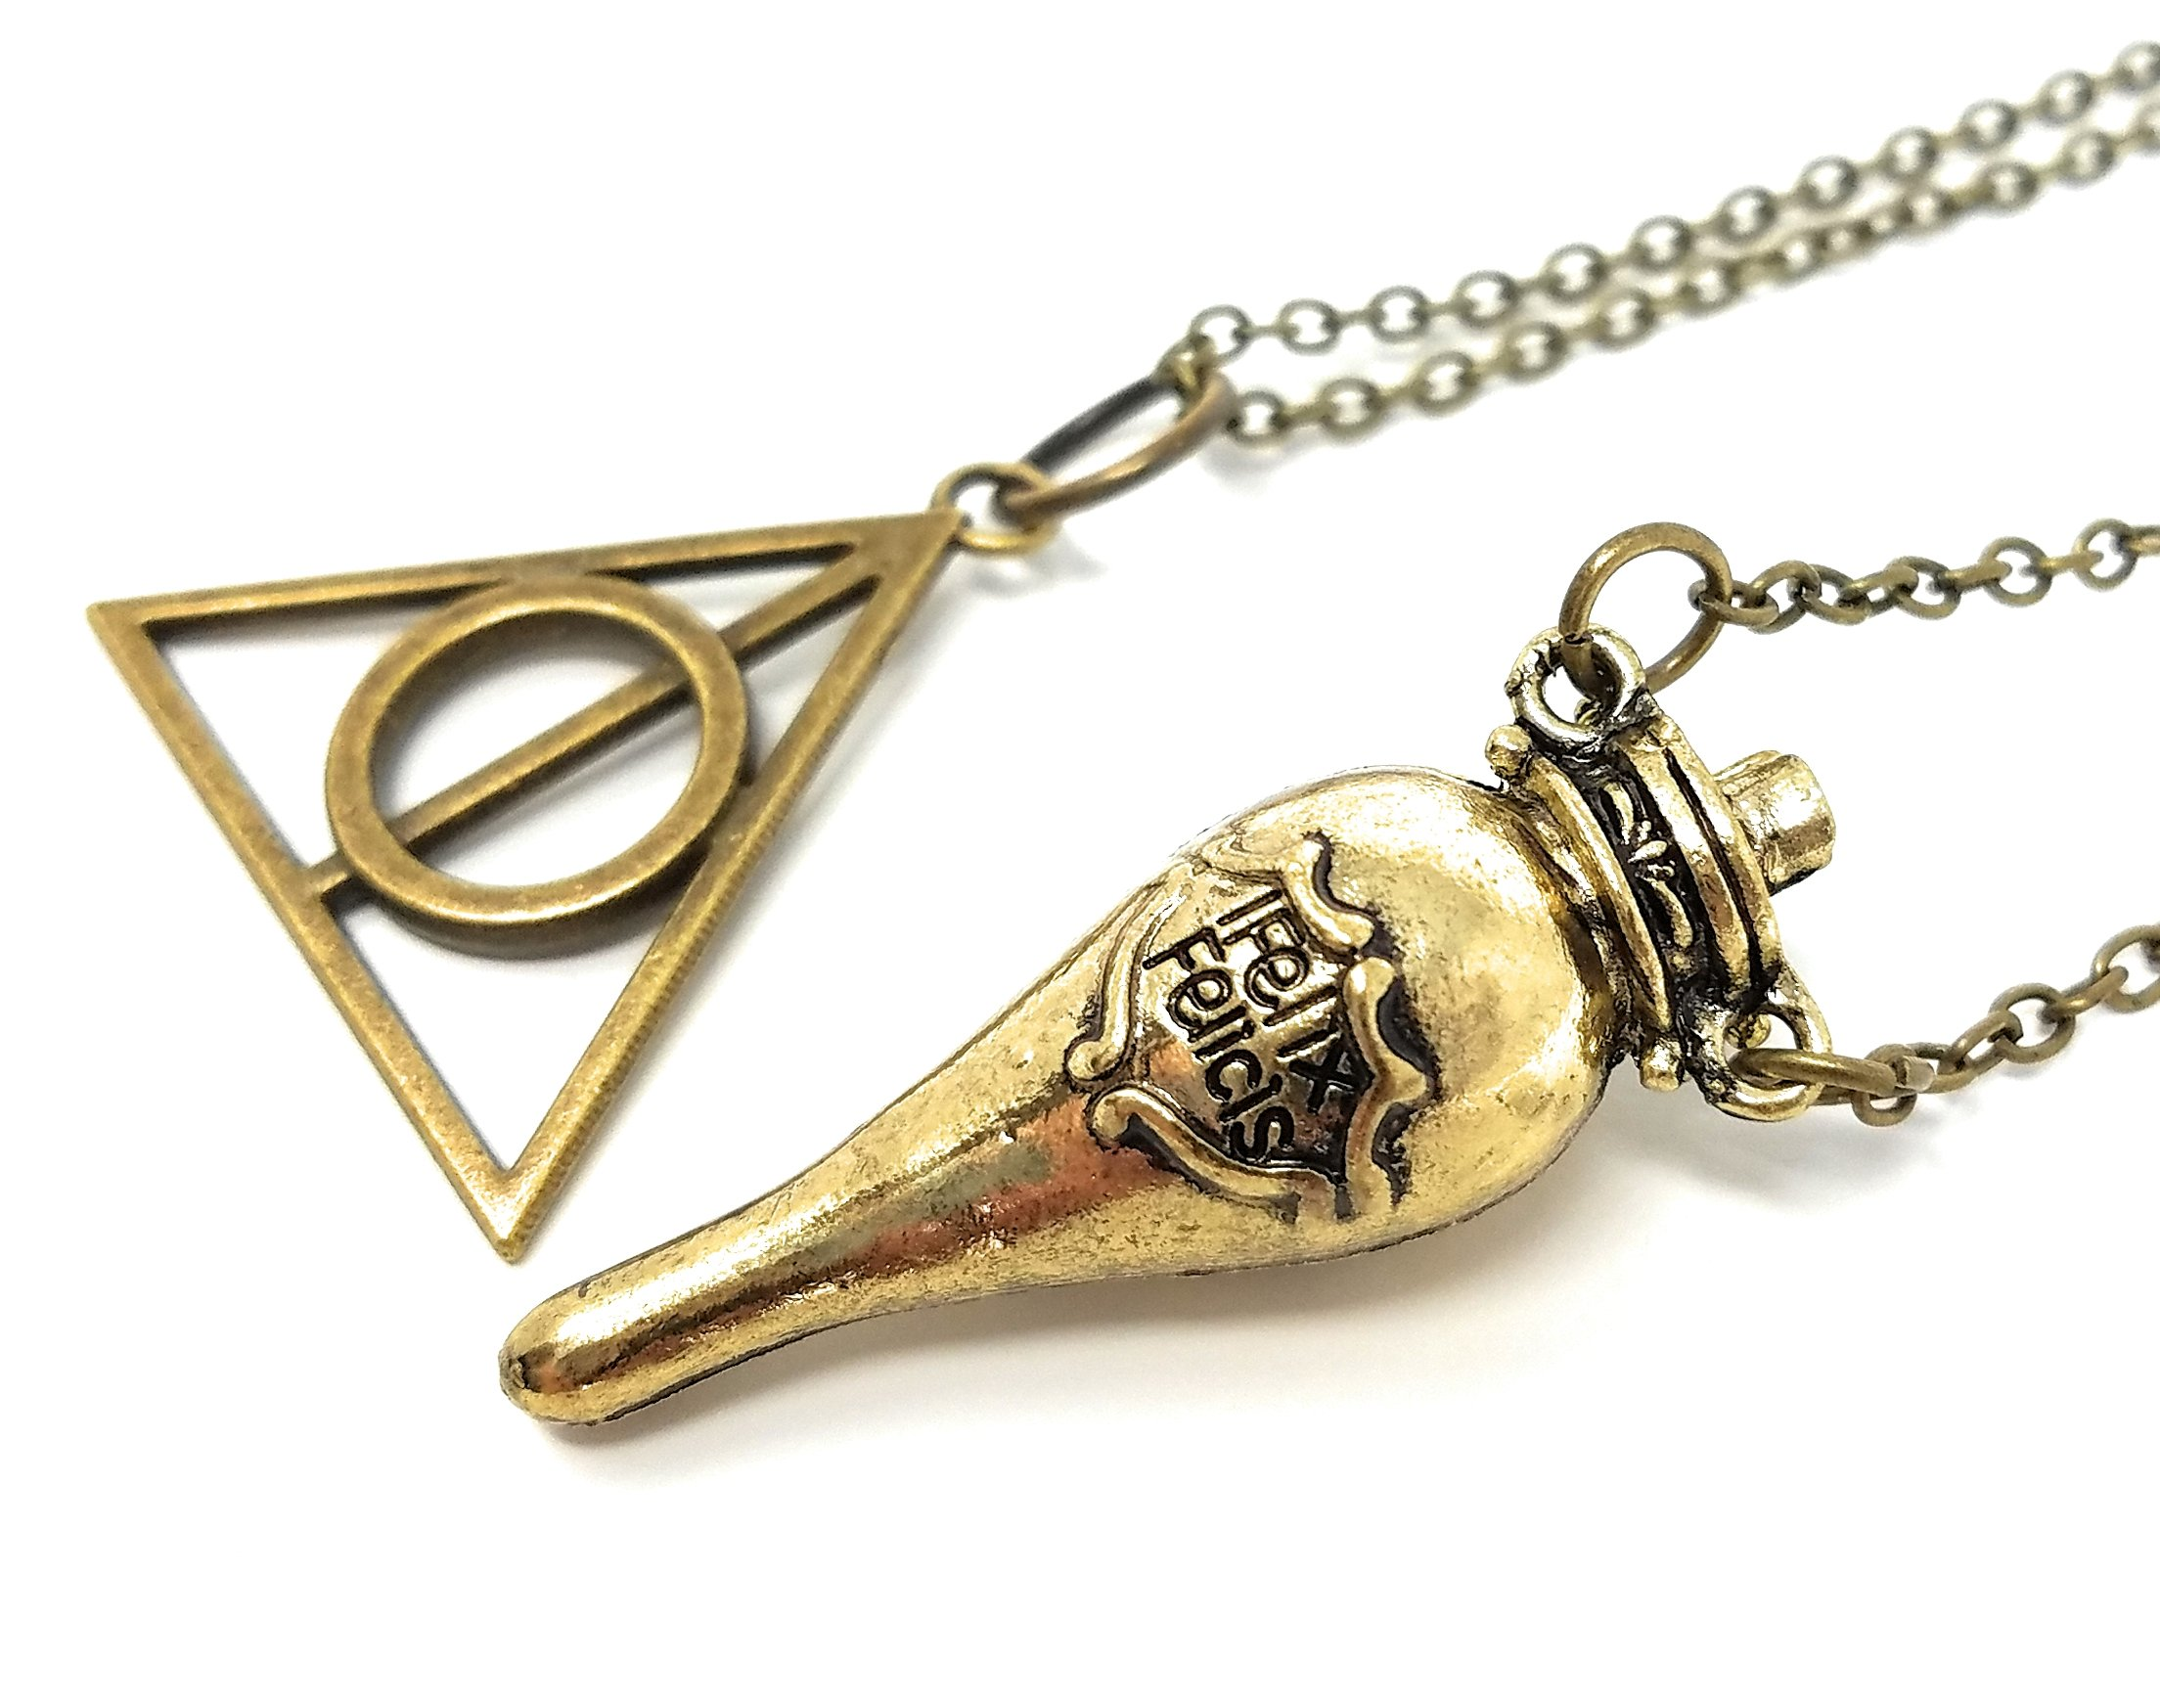 Wicked Witchery Harry Potter Liquid Luck/Felix Felicis Bottle and Deathly Hallows Necklace Set